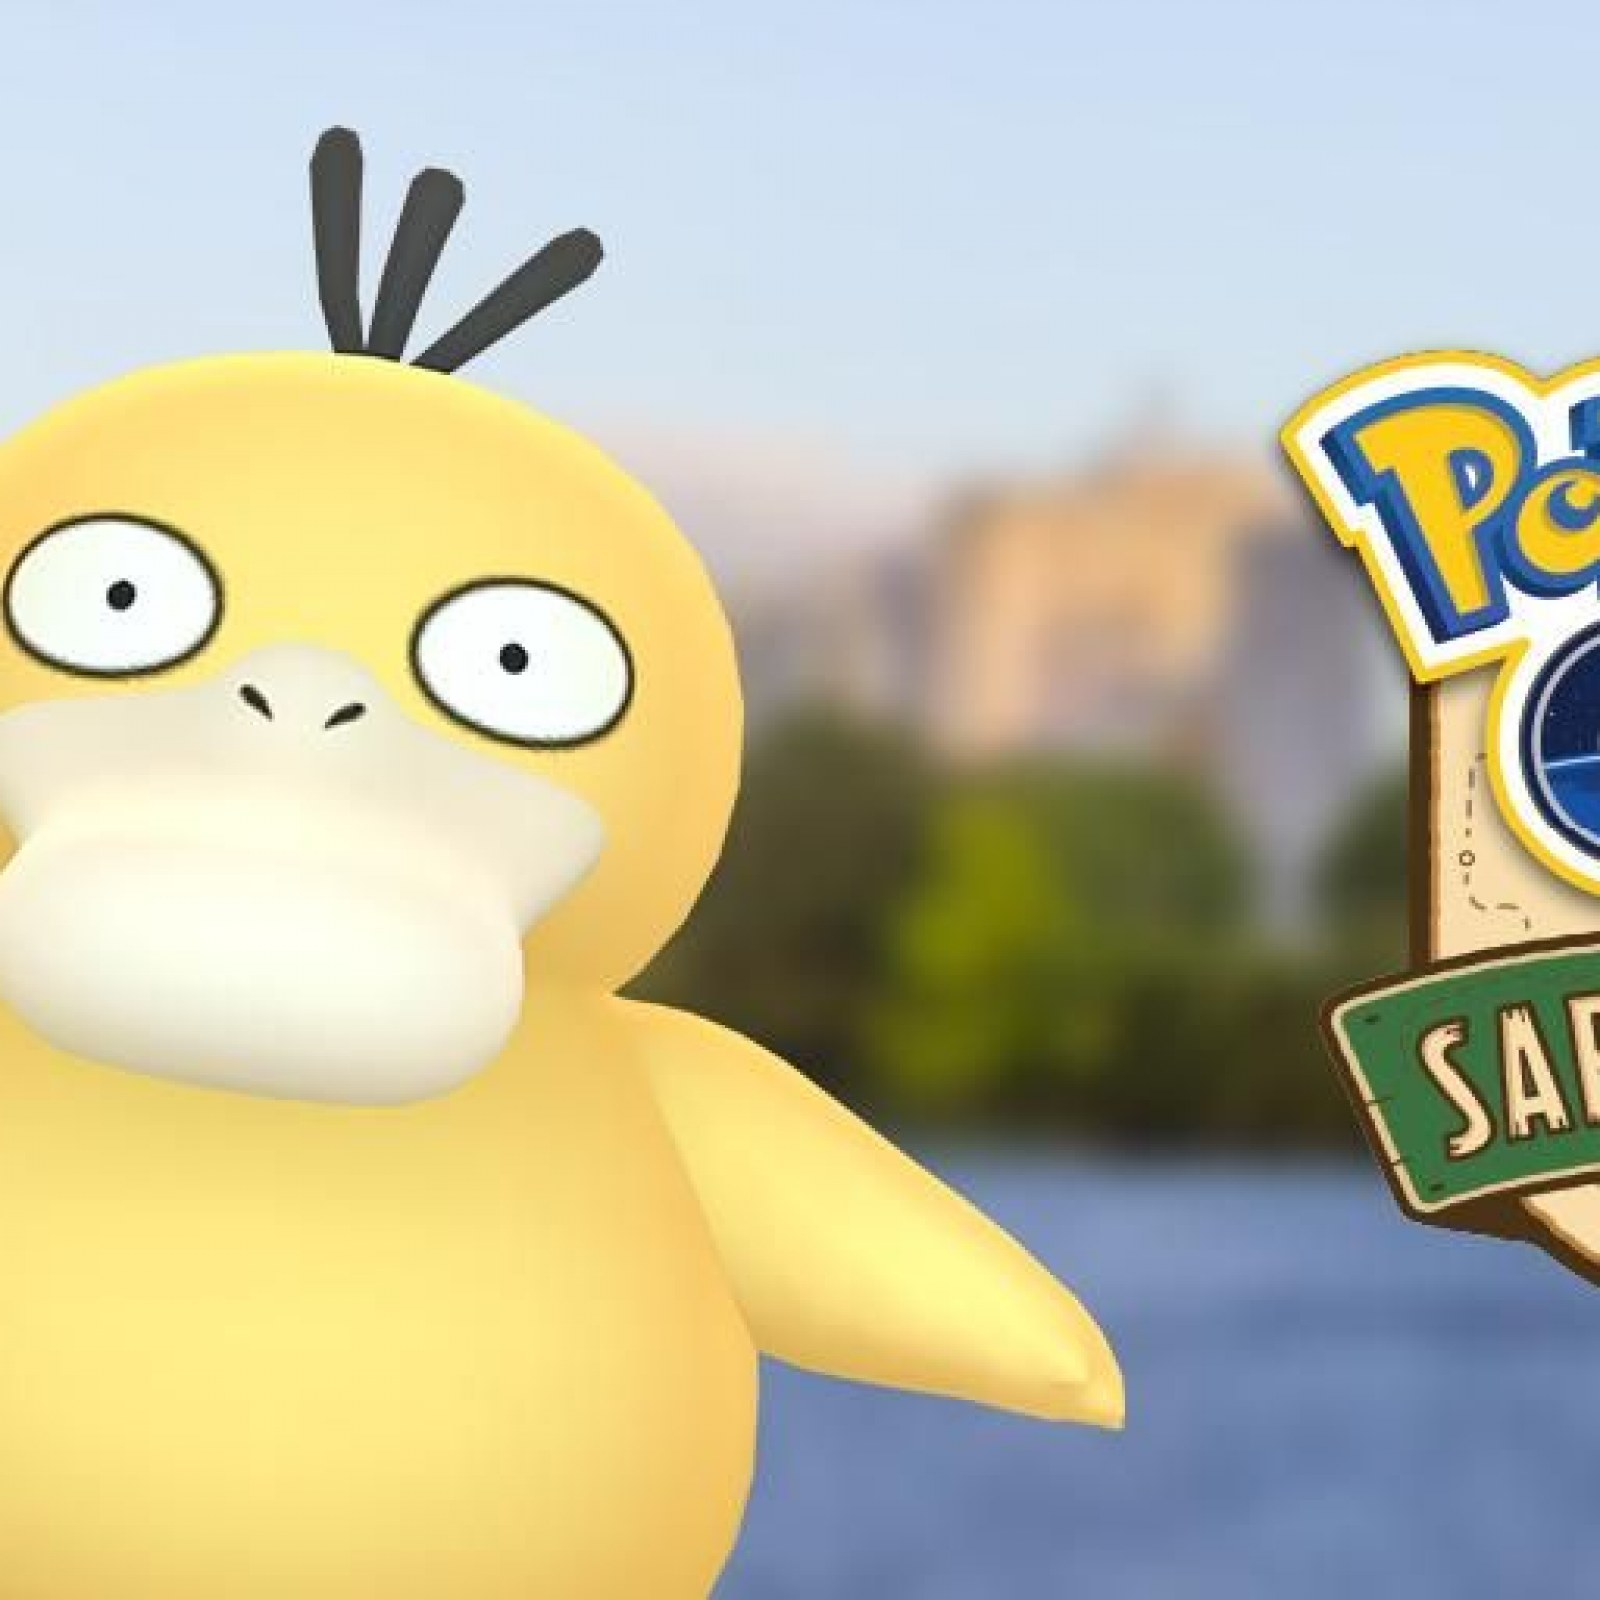 Pokémon Go' Shiny Psyduck: When Can You Look for the Blue Duck